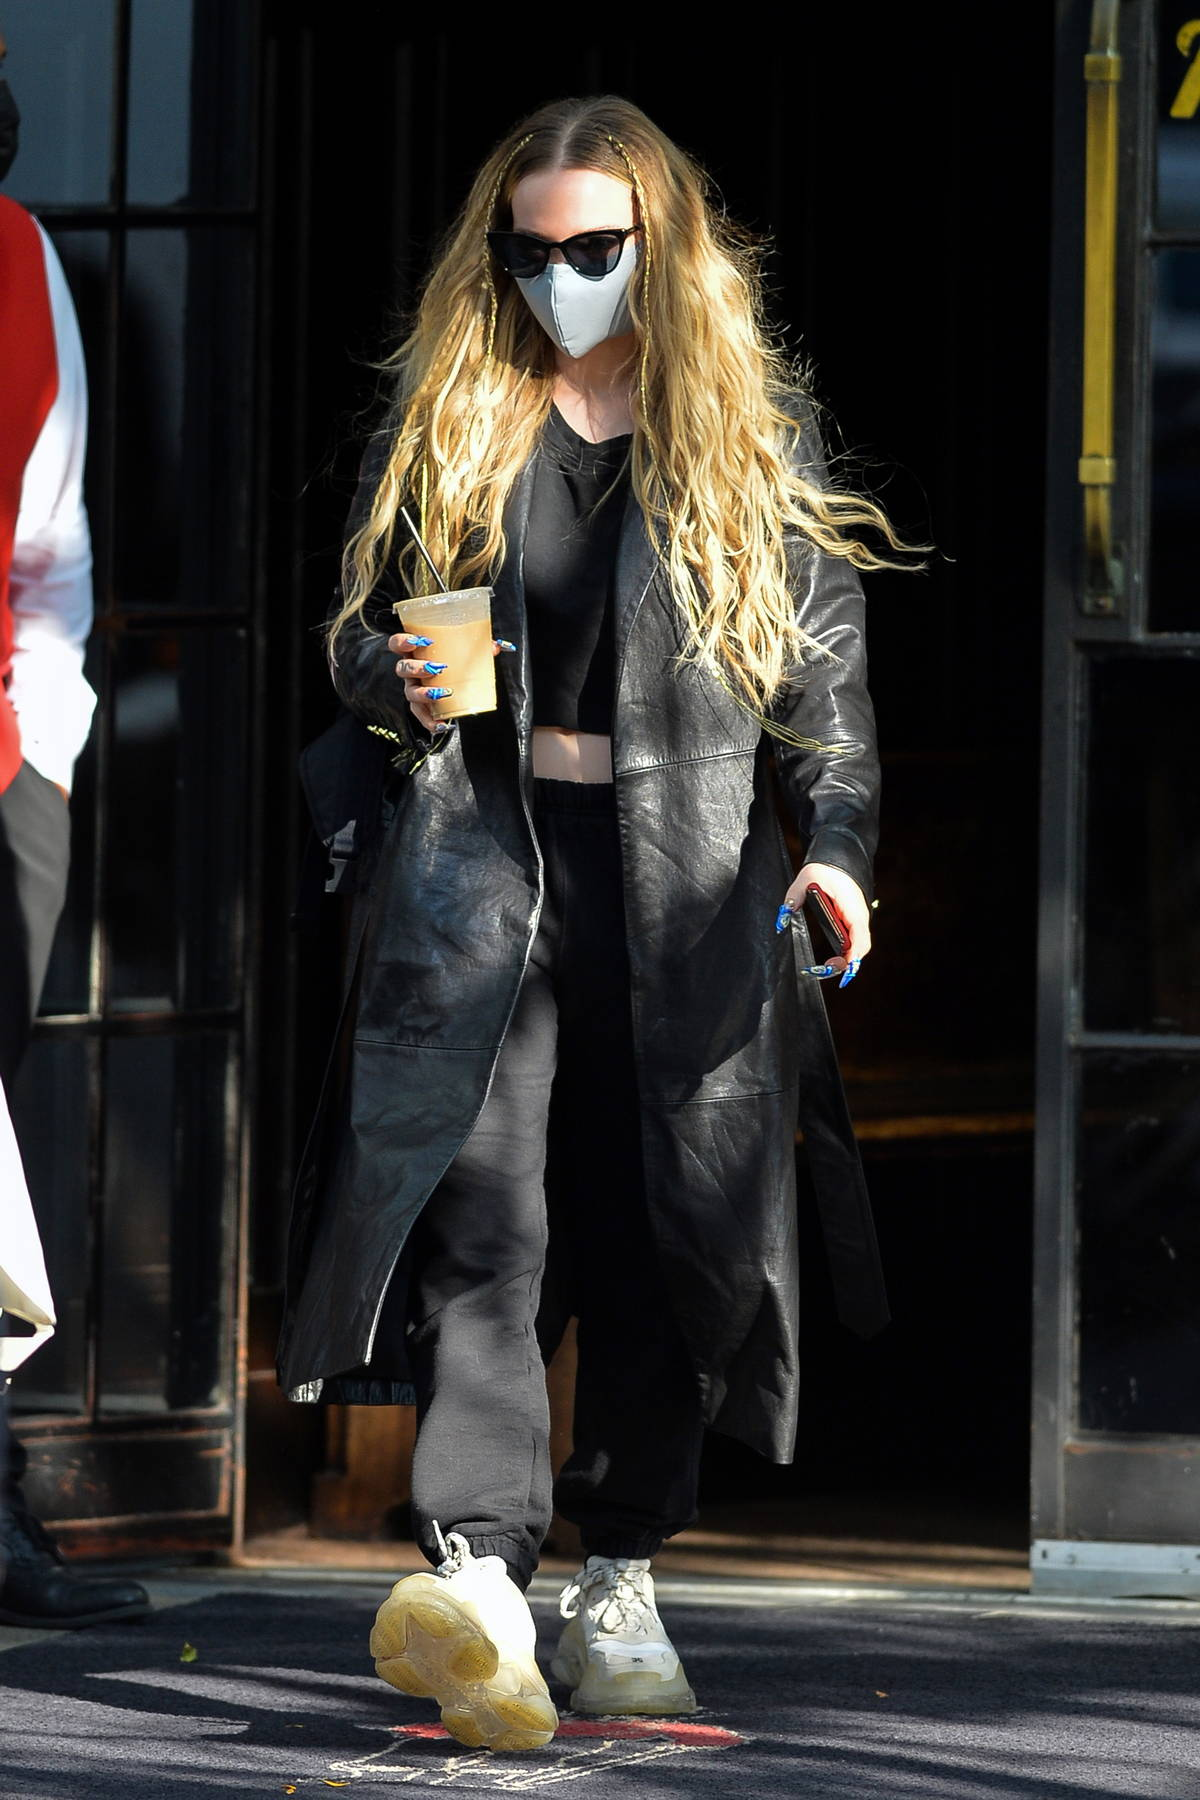 Dove Cameron rocks a leather trench coat over black sweats while heading out holding an iced coffee in New York City